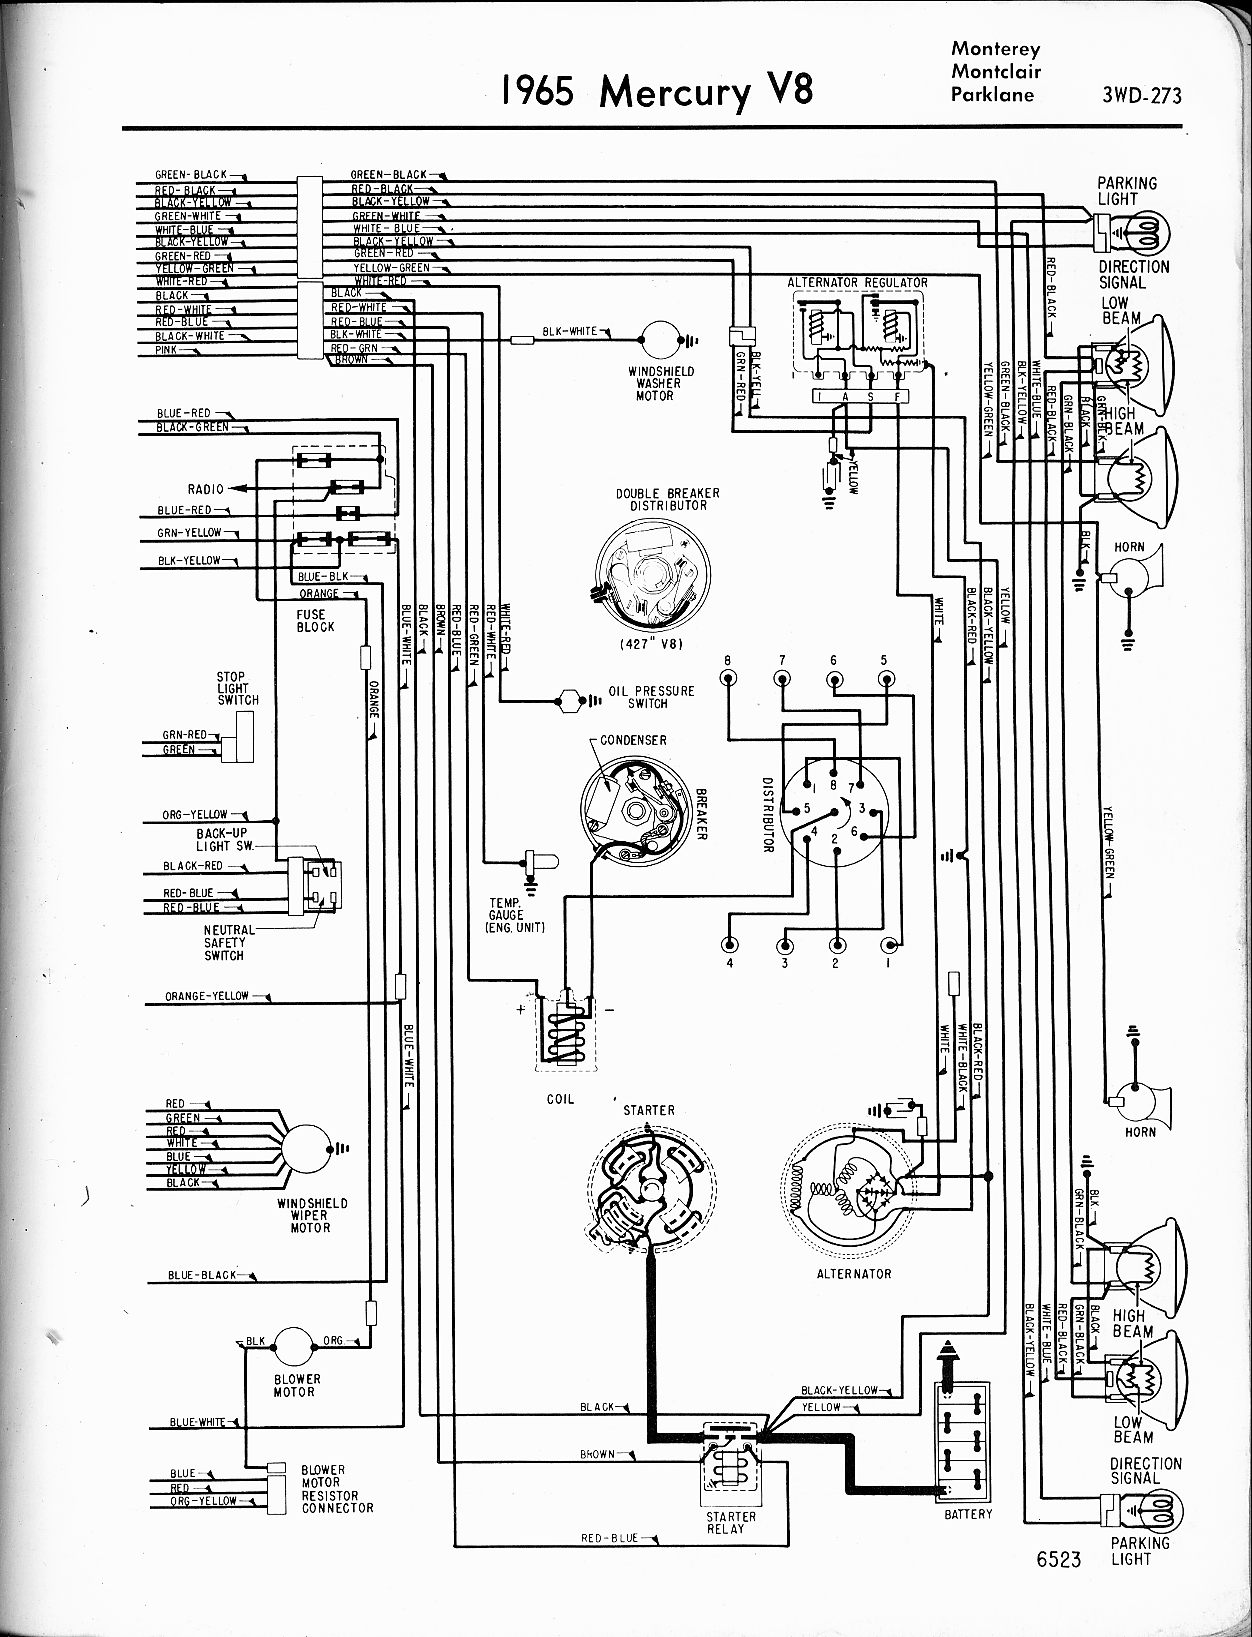 MWire5765 273 mercury wiring diagrams the old car manual project Chevy Ignition Wiring Diagram at crackthecode.co